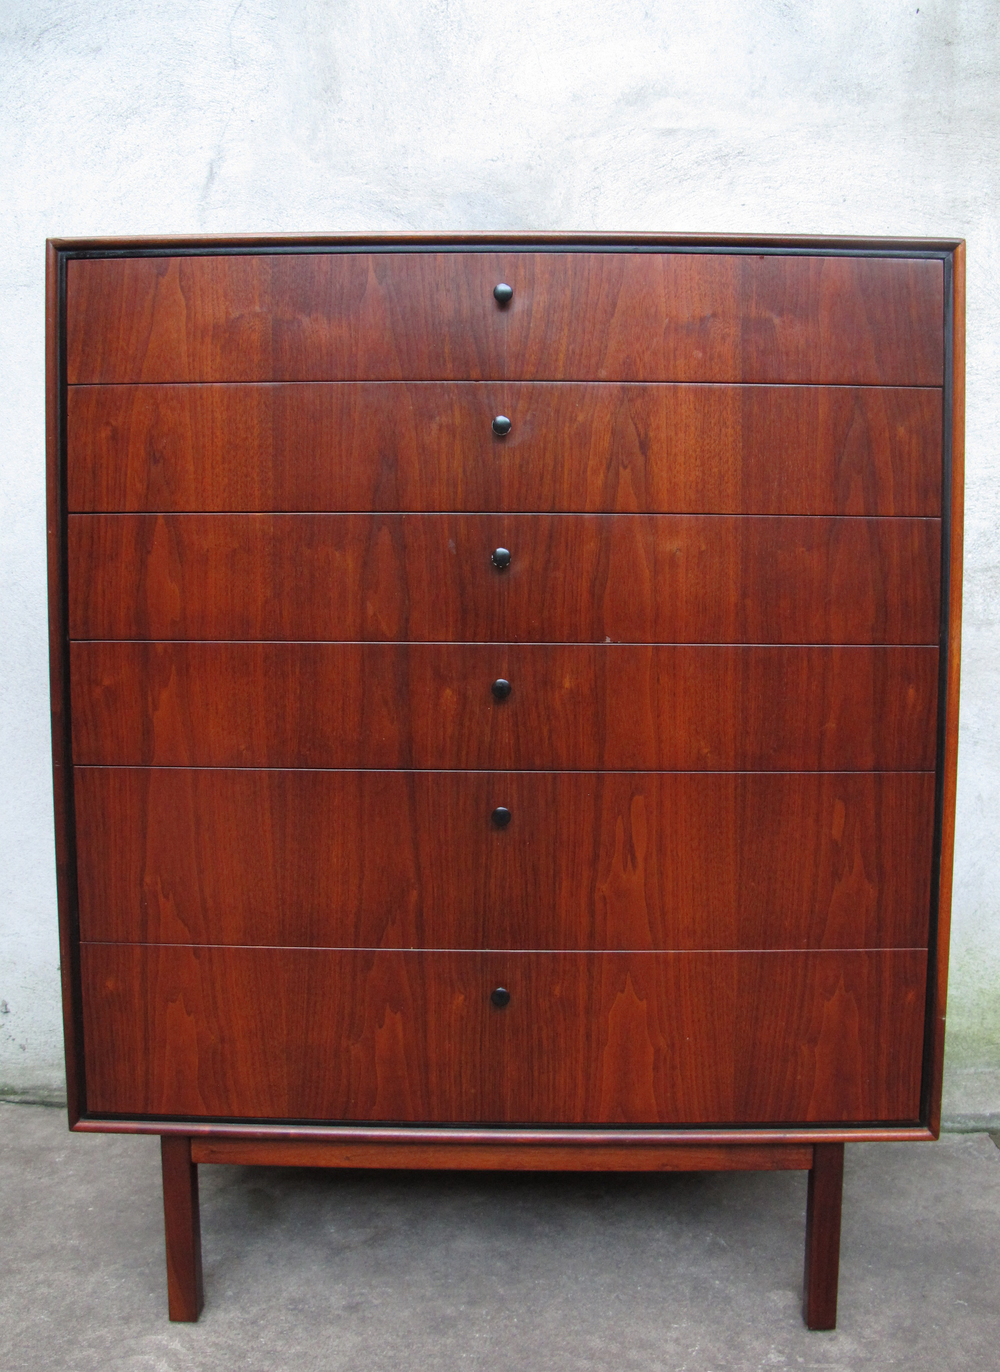 MID CENTURY MILO BAUGHMAN TALL DRESSER FOR ARCH GORDON